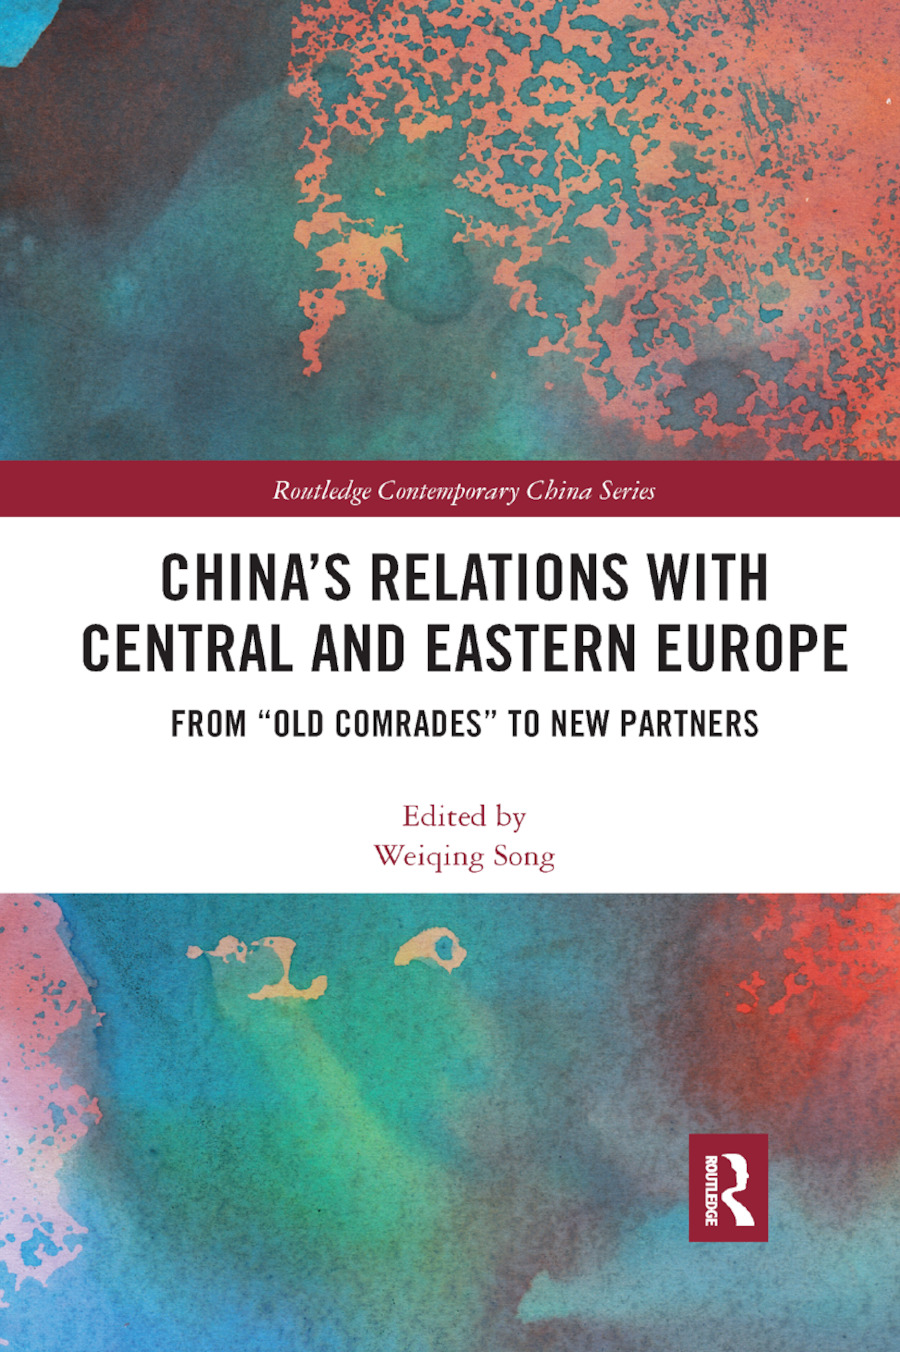 China's Relations with Central and Eastern Europe: From